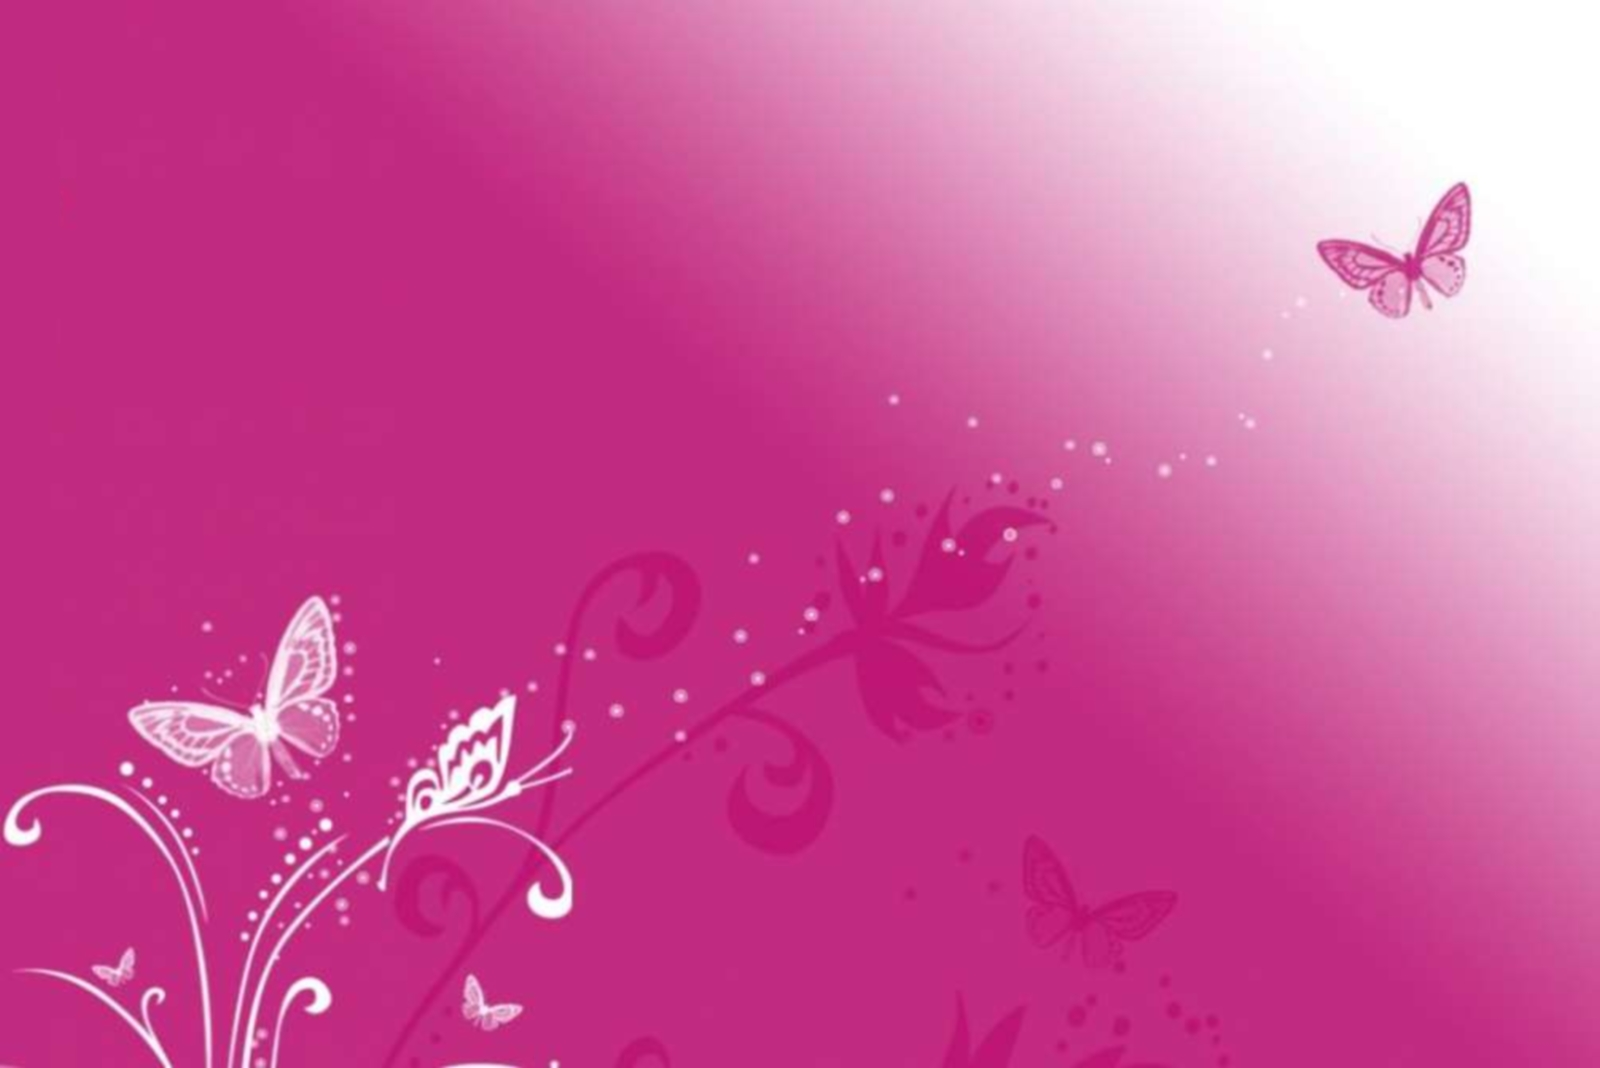 Pink Wallpaper Designs   All Wallpapers New 1600x1068